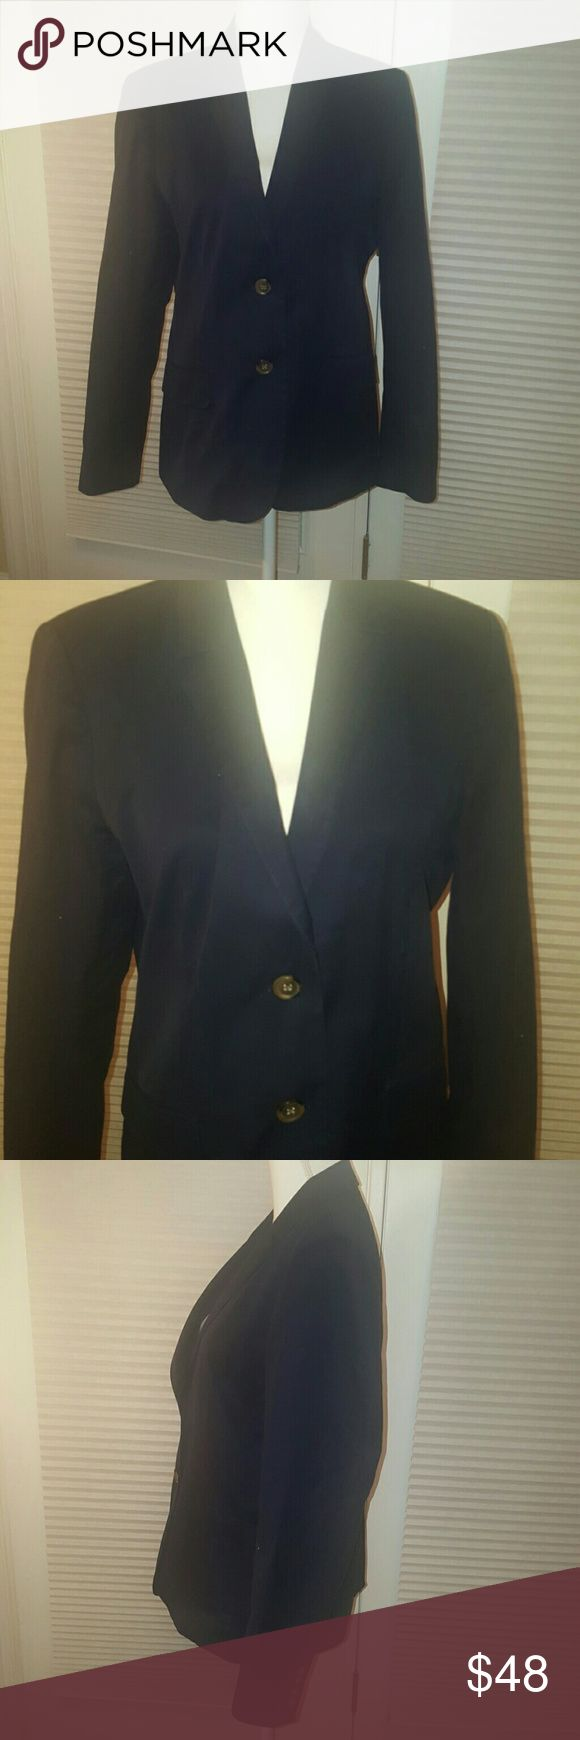 J.Crew navy school boy cotton blazer size 12 This blazer is like new  J.Crew navy blue school boy blazer.  Size 12  cotton and spandex blend, very light weight and perfect for spring and summer. J. Crew Jackets & Coats Blazers